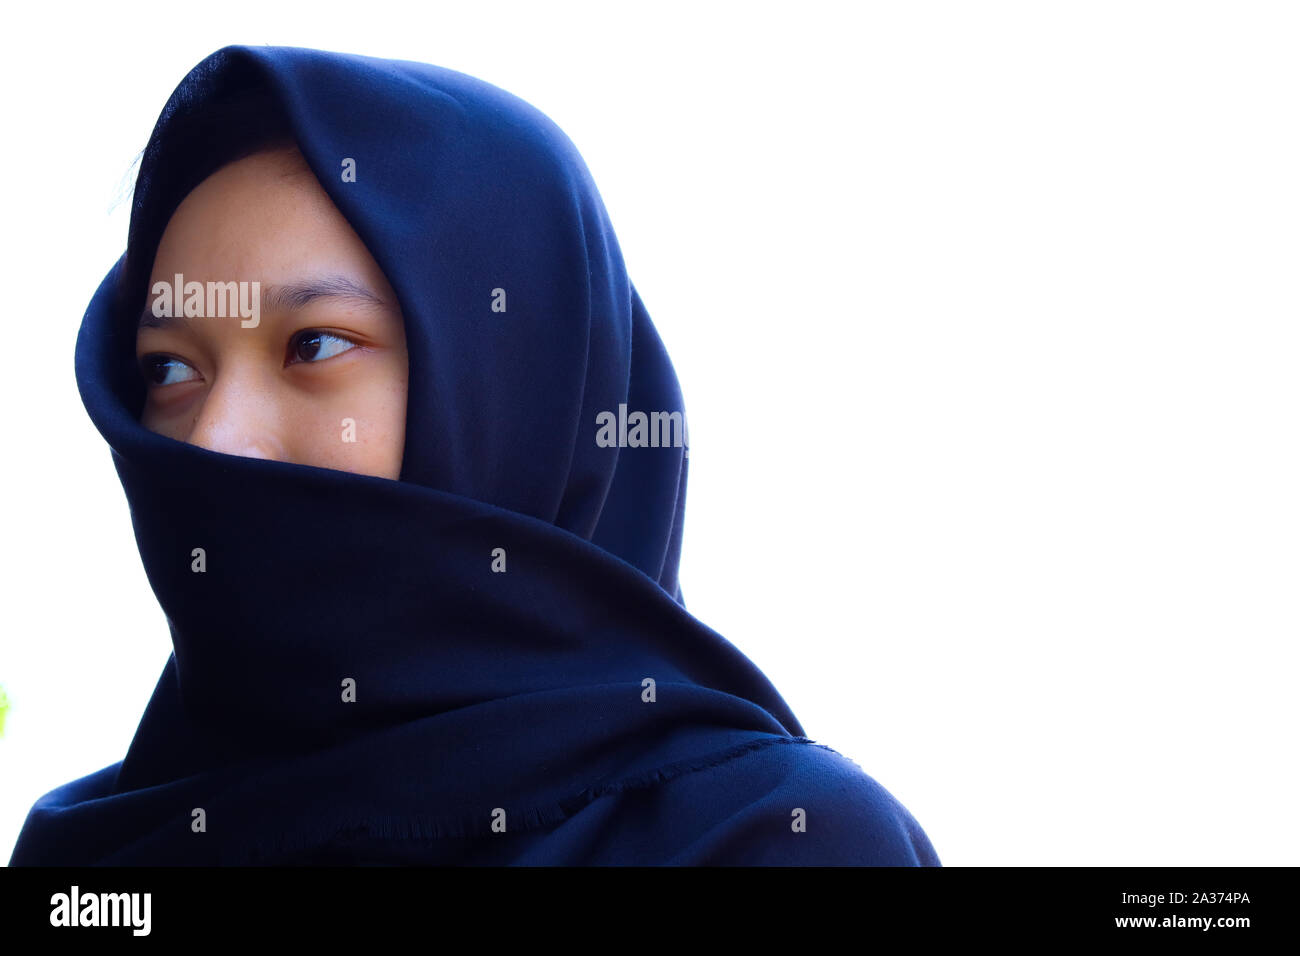 a photo of a Muslim woman in a veil Stock Photo